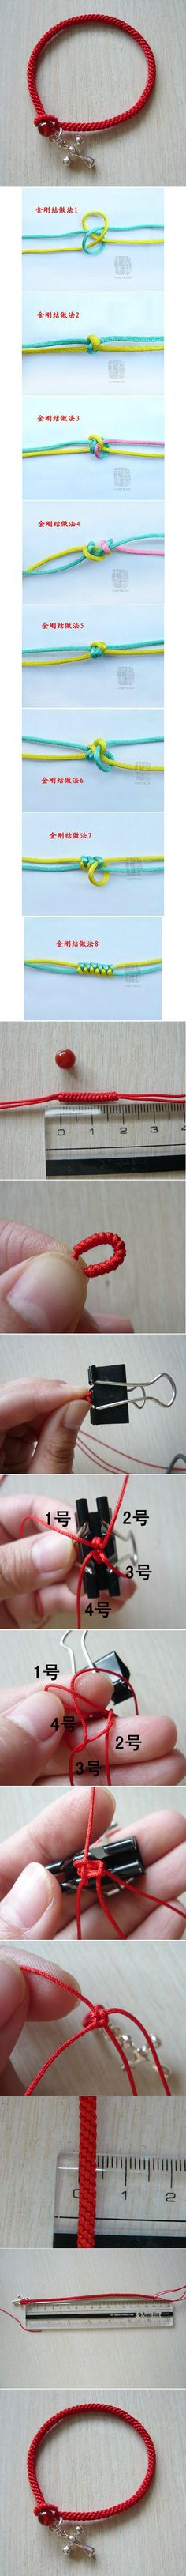 DIY Easy Chinese Knot Bracelet - Was on a Kumihimo Board: http://www.pinterest.com/melacprm/kumihimo/